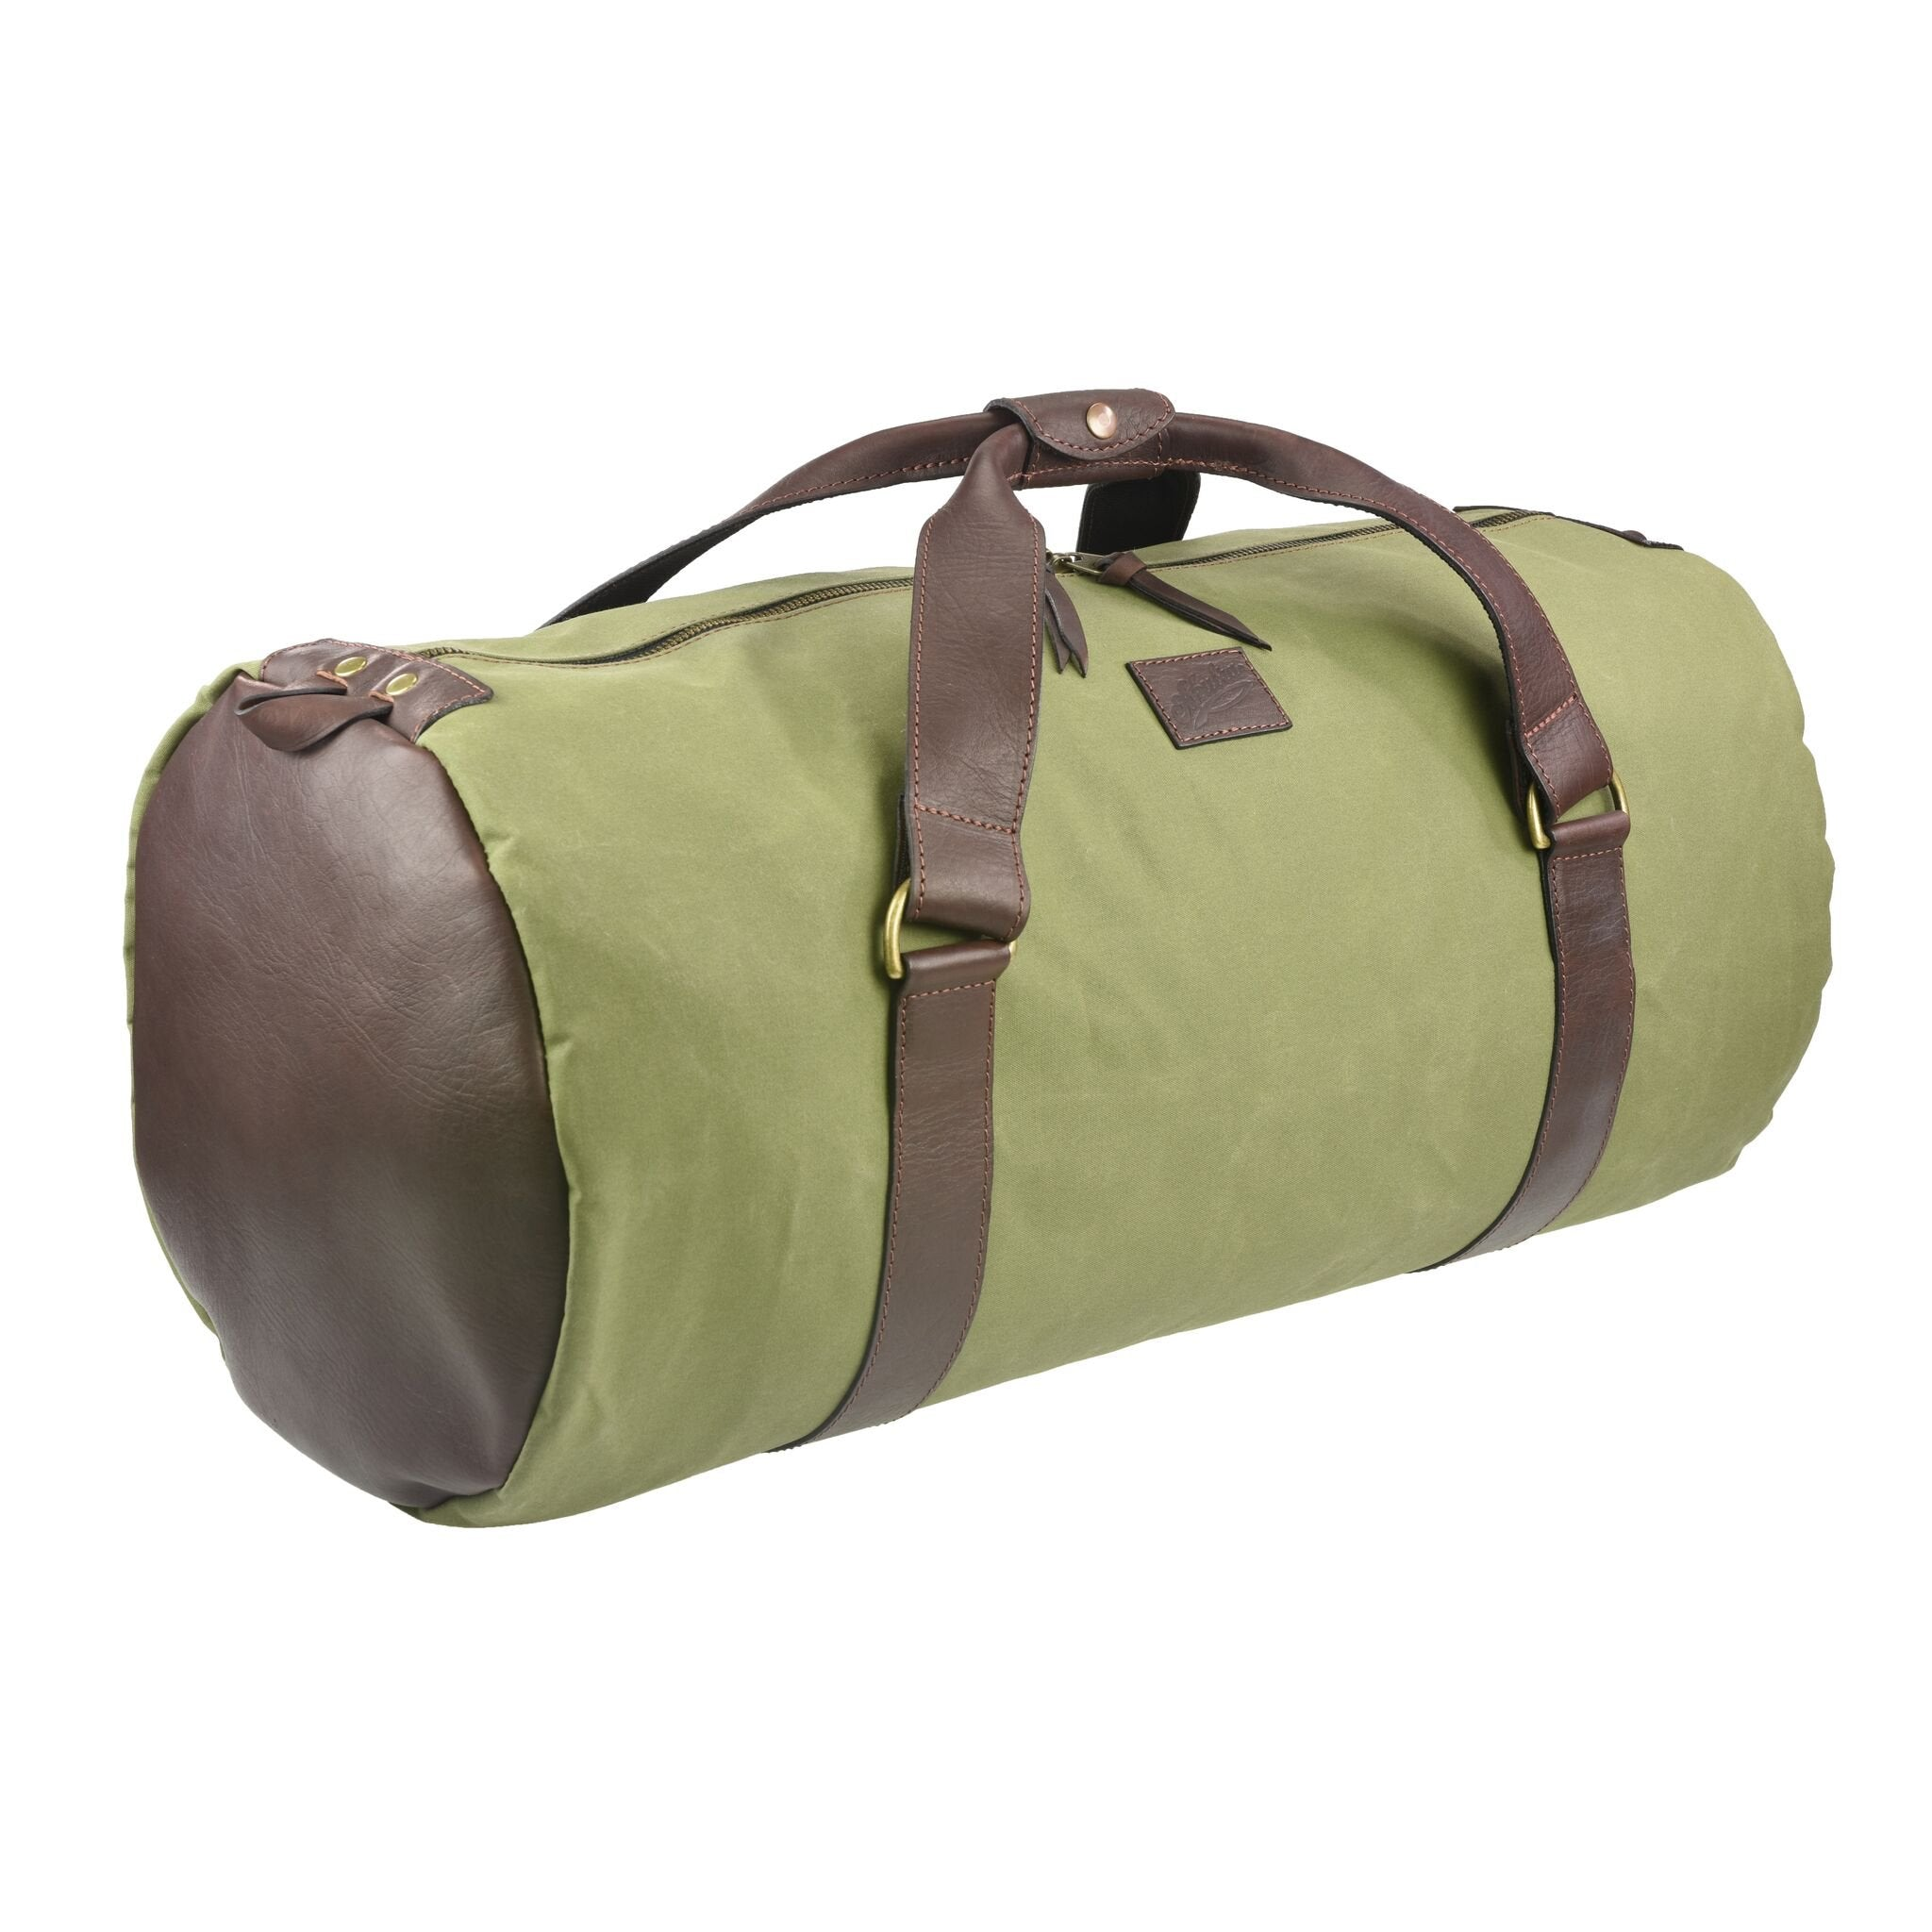 Akubra Murrumbidgee Drum Bag - Green